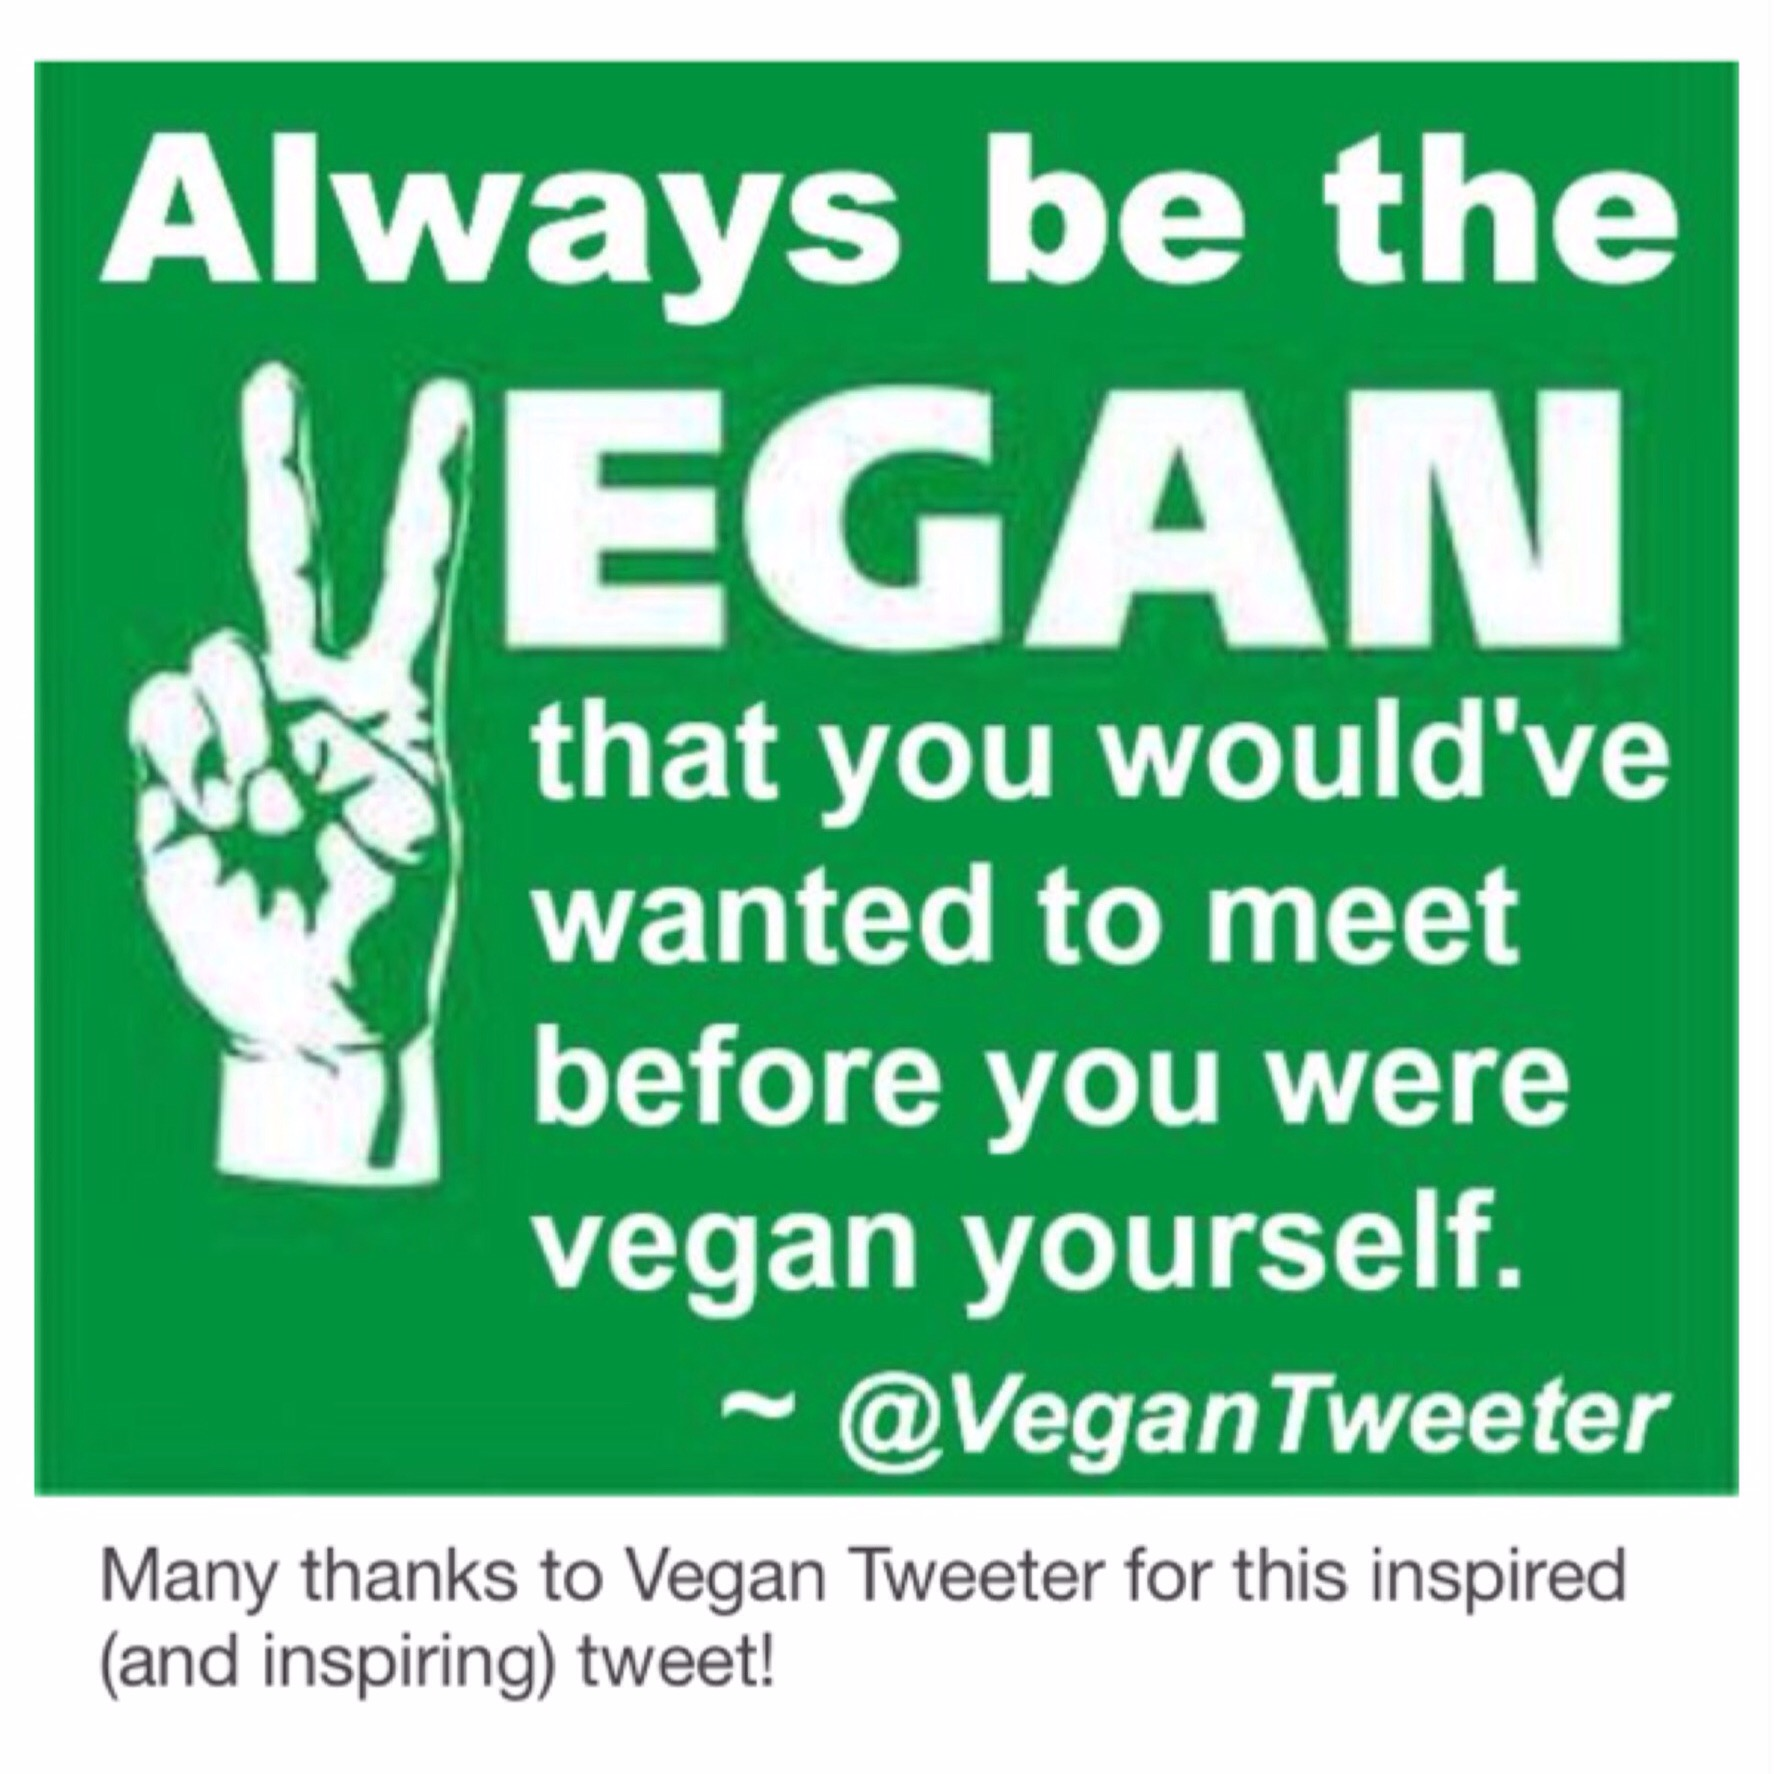 Vegan Quotes Alluring 19 Vegan Quotes Quotations That Make You Think  Veginspired